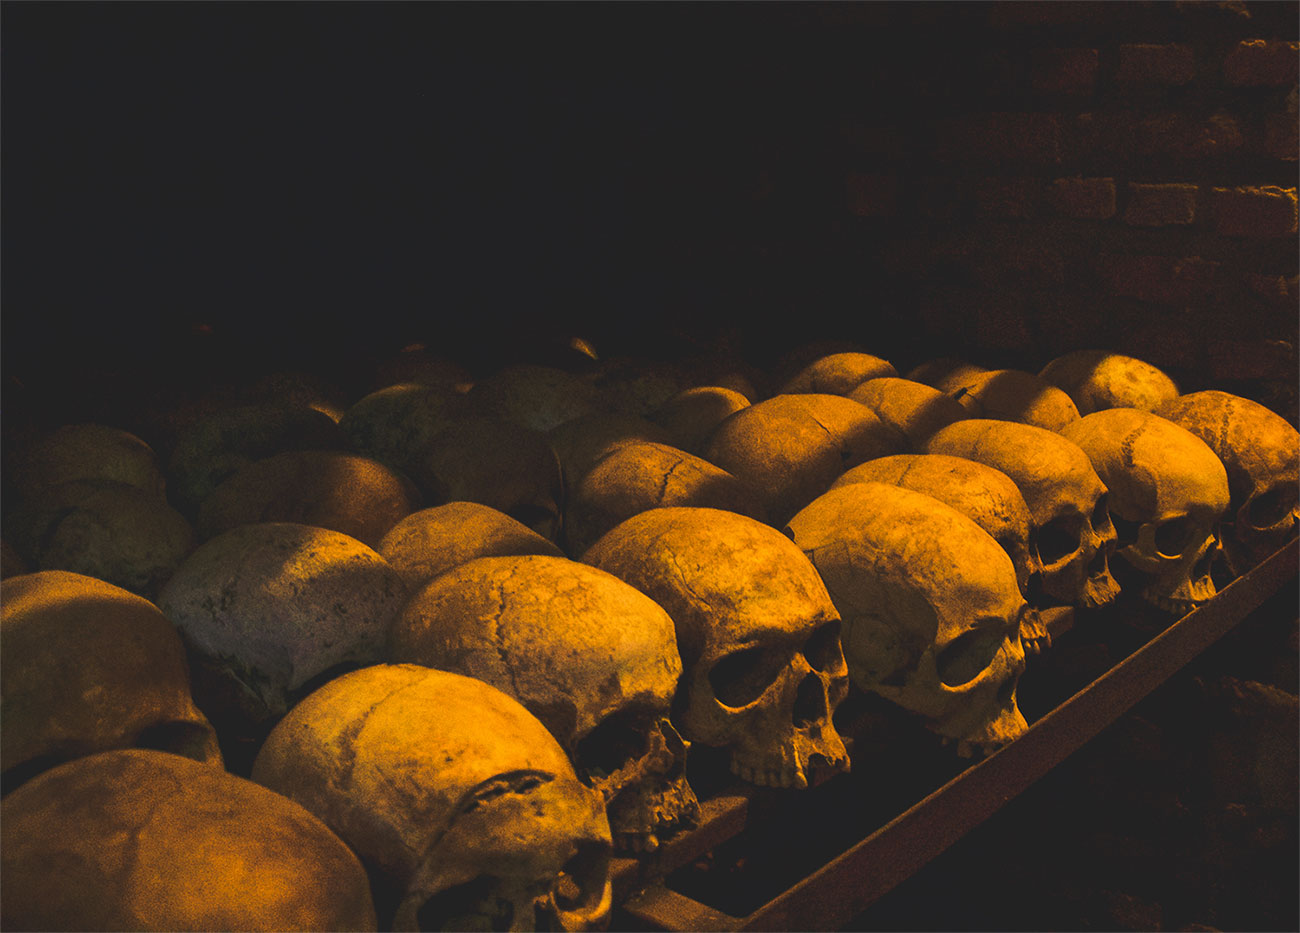 Photos: The Rwandan Genocide